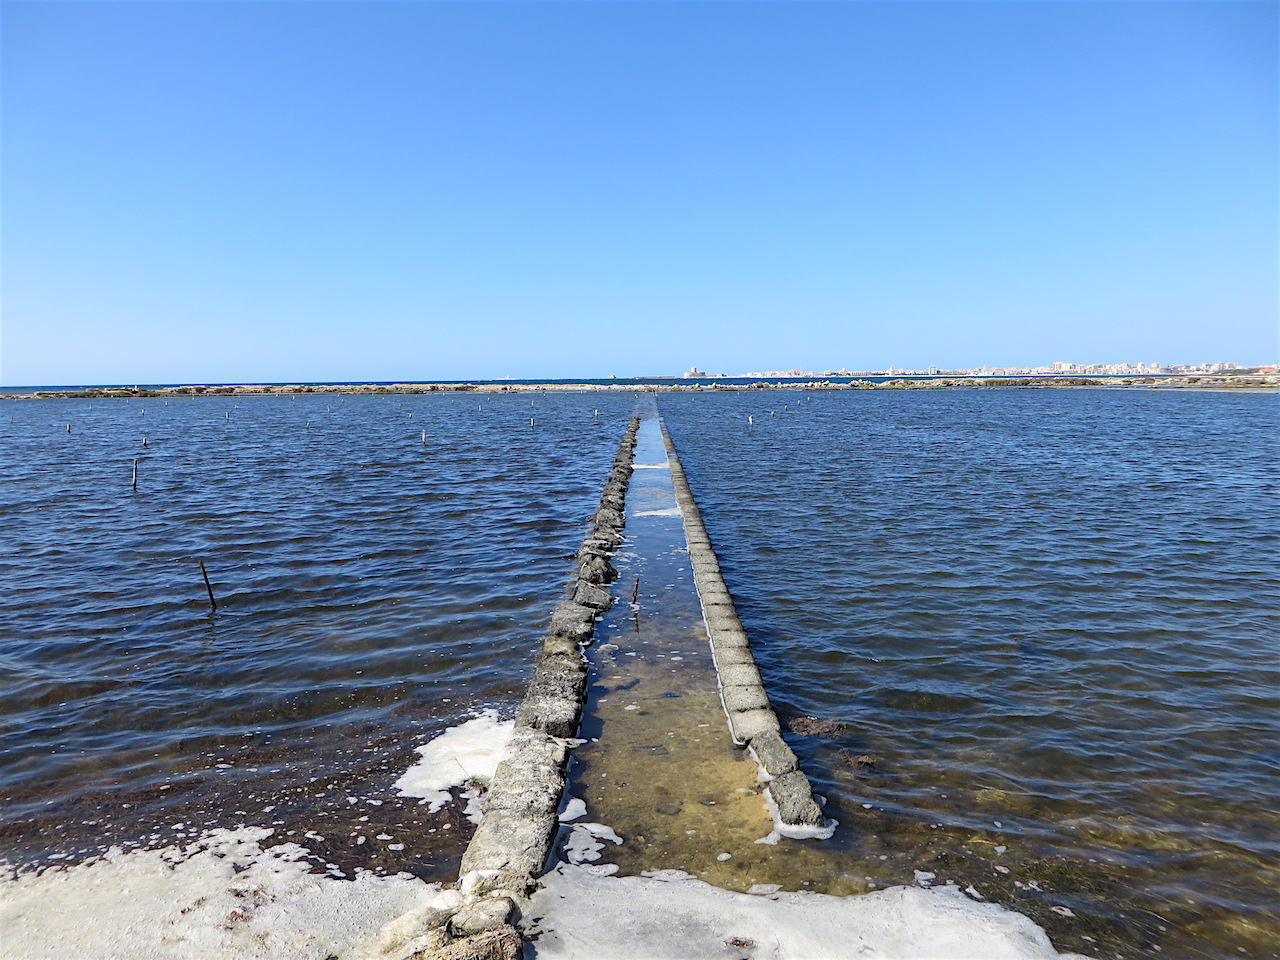 A view of the sea edge of the ancient salt pans at Trapani, in western Sicily (Photo: Andy Worthington).